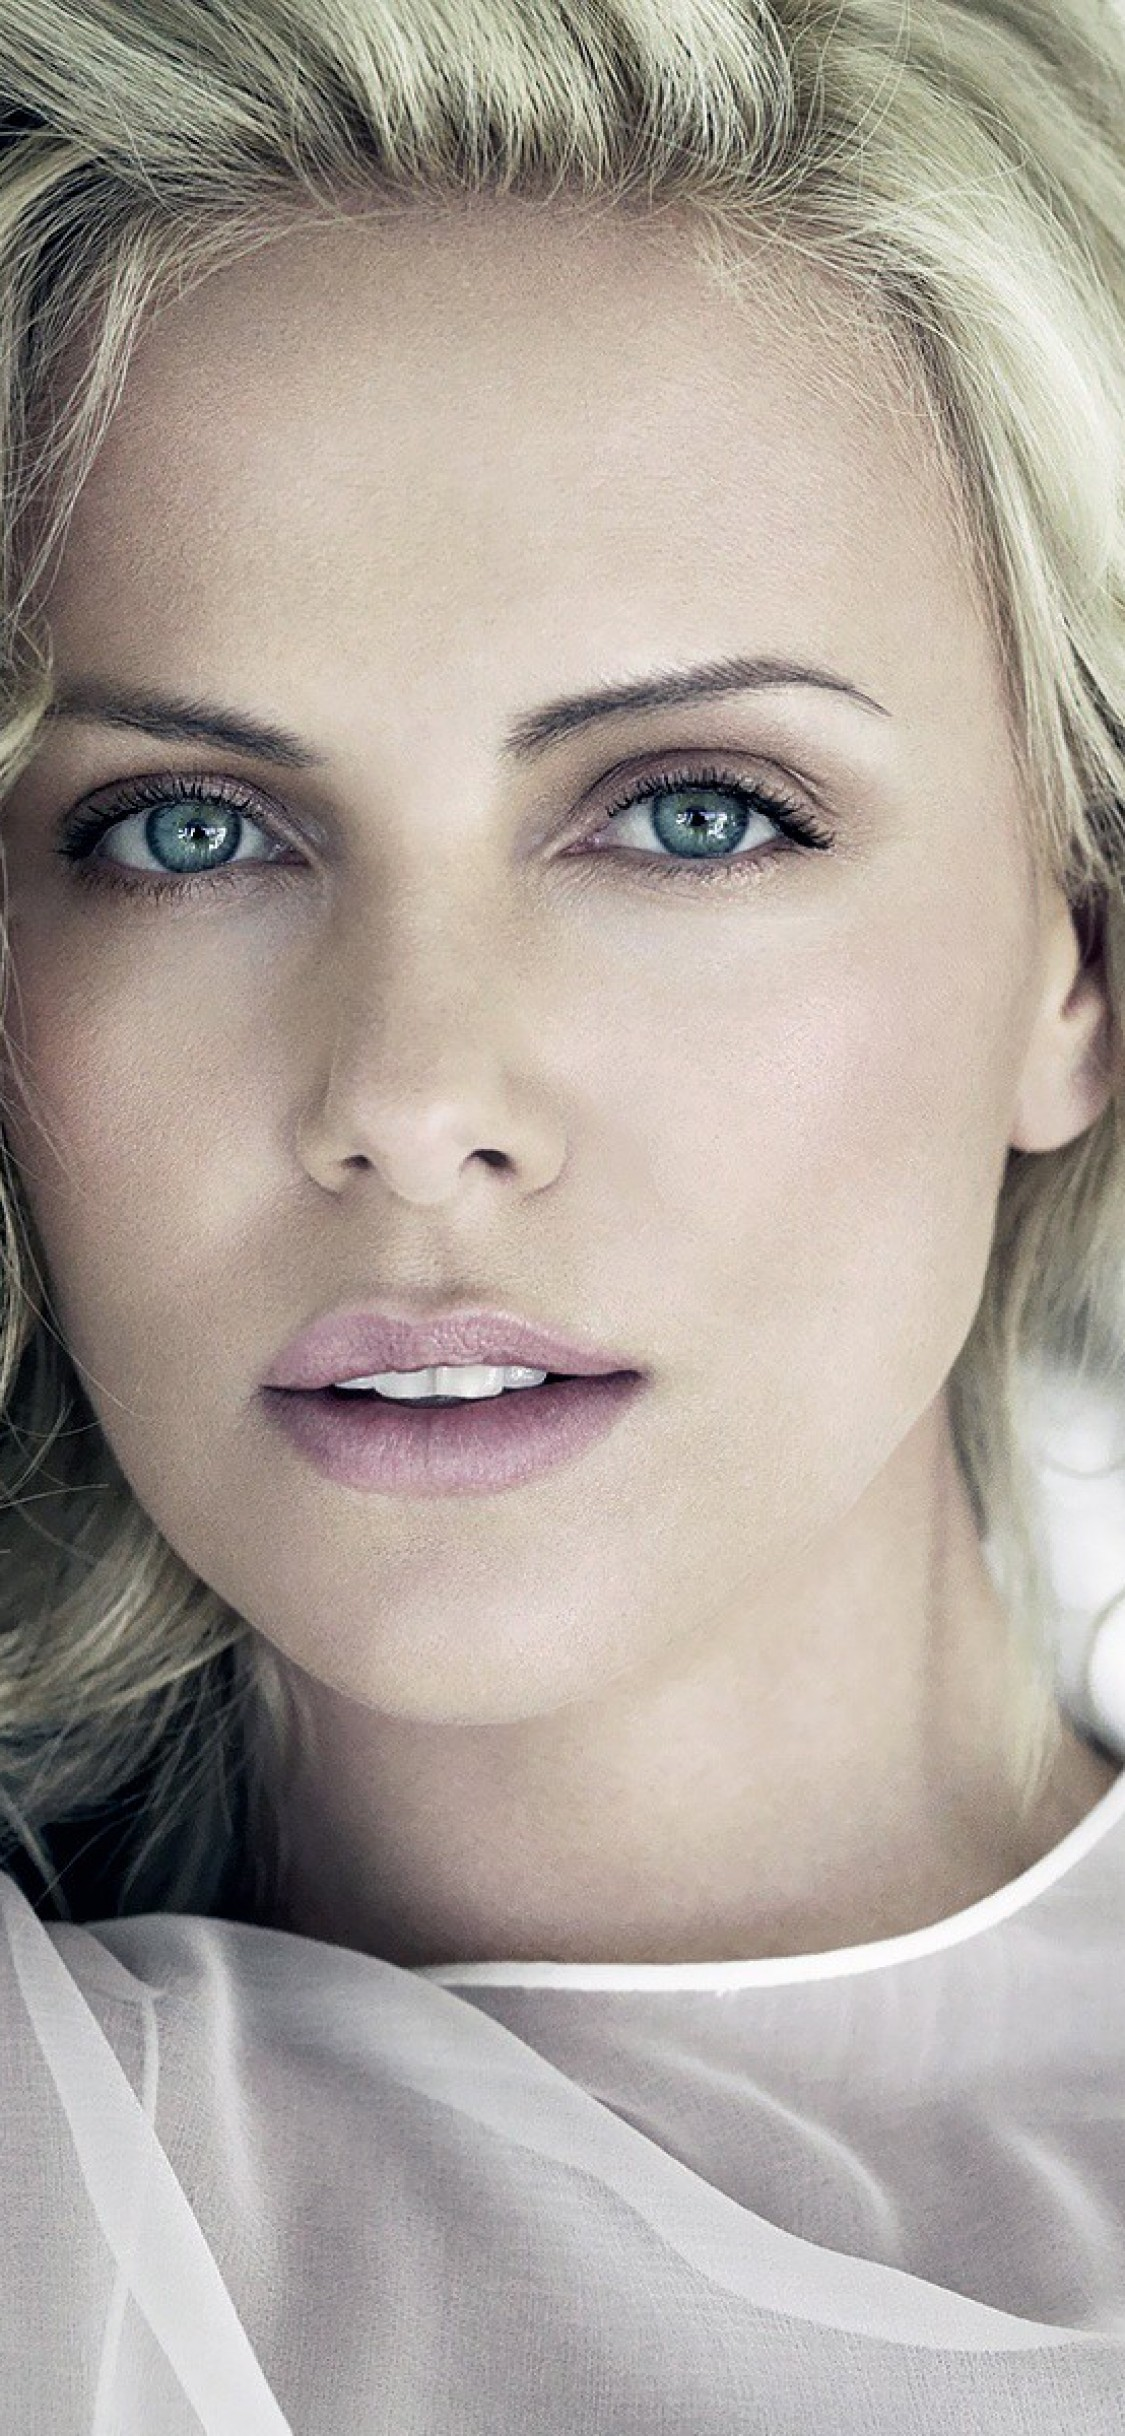 1125x2436 - Charlize Theron Wallpapers 34